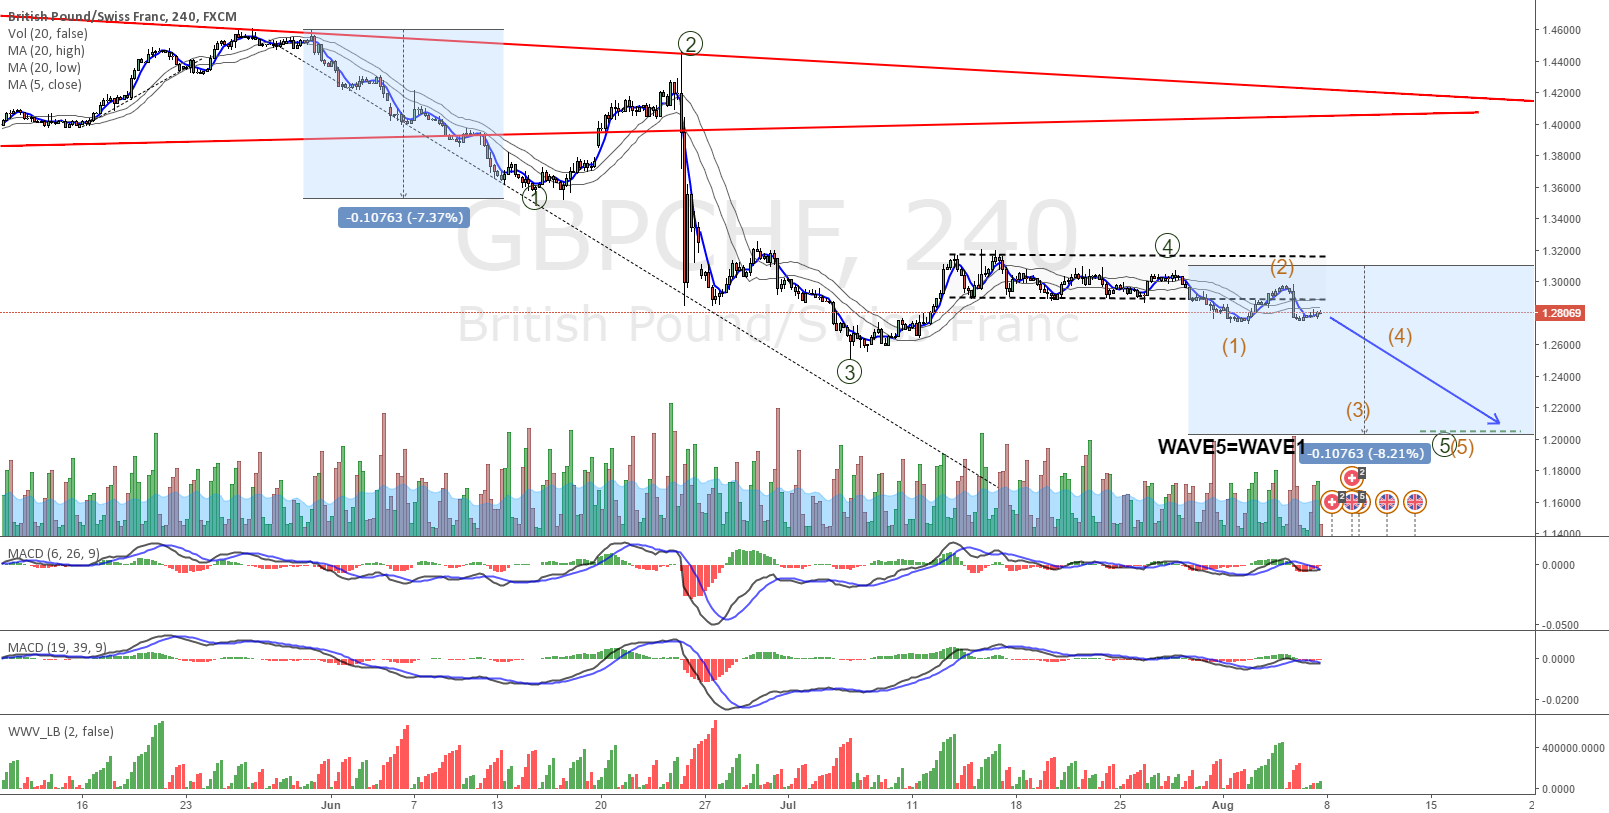 GBPCHF corrective looks to have ended and wave 1 of